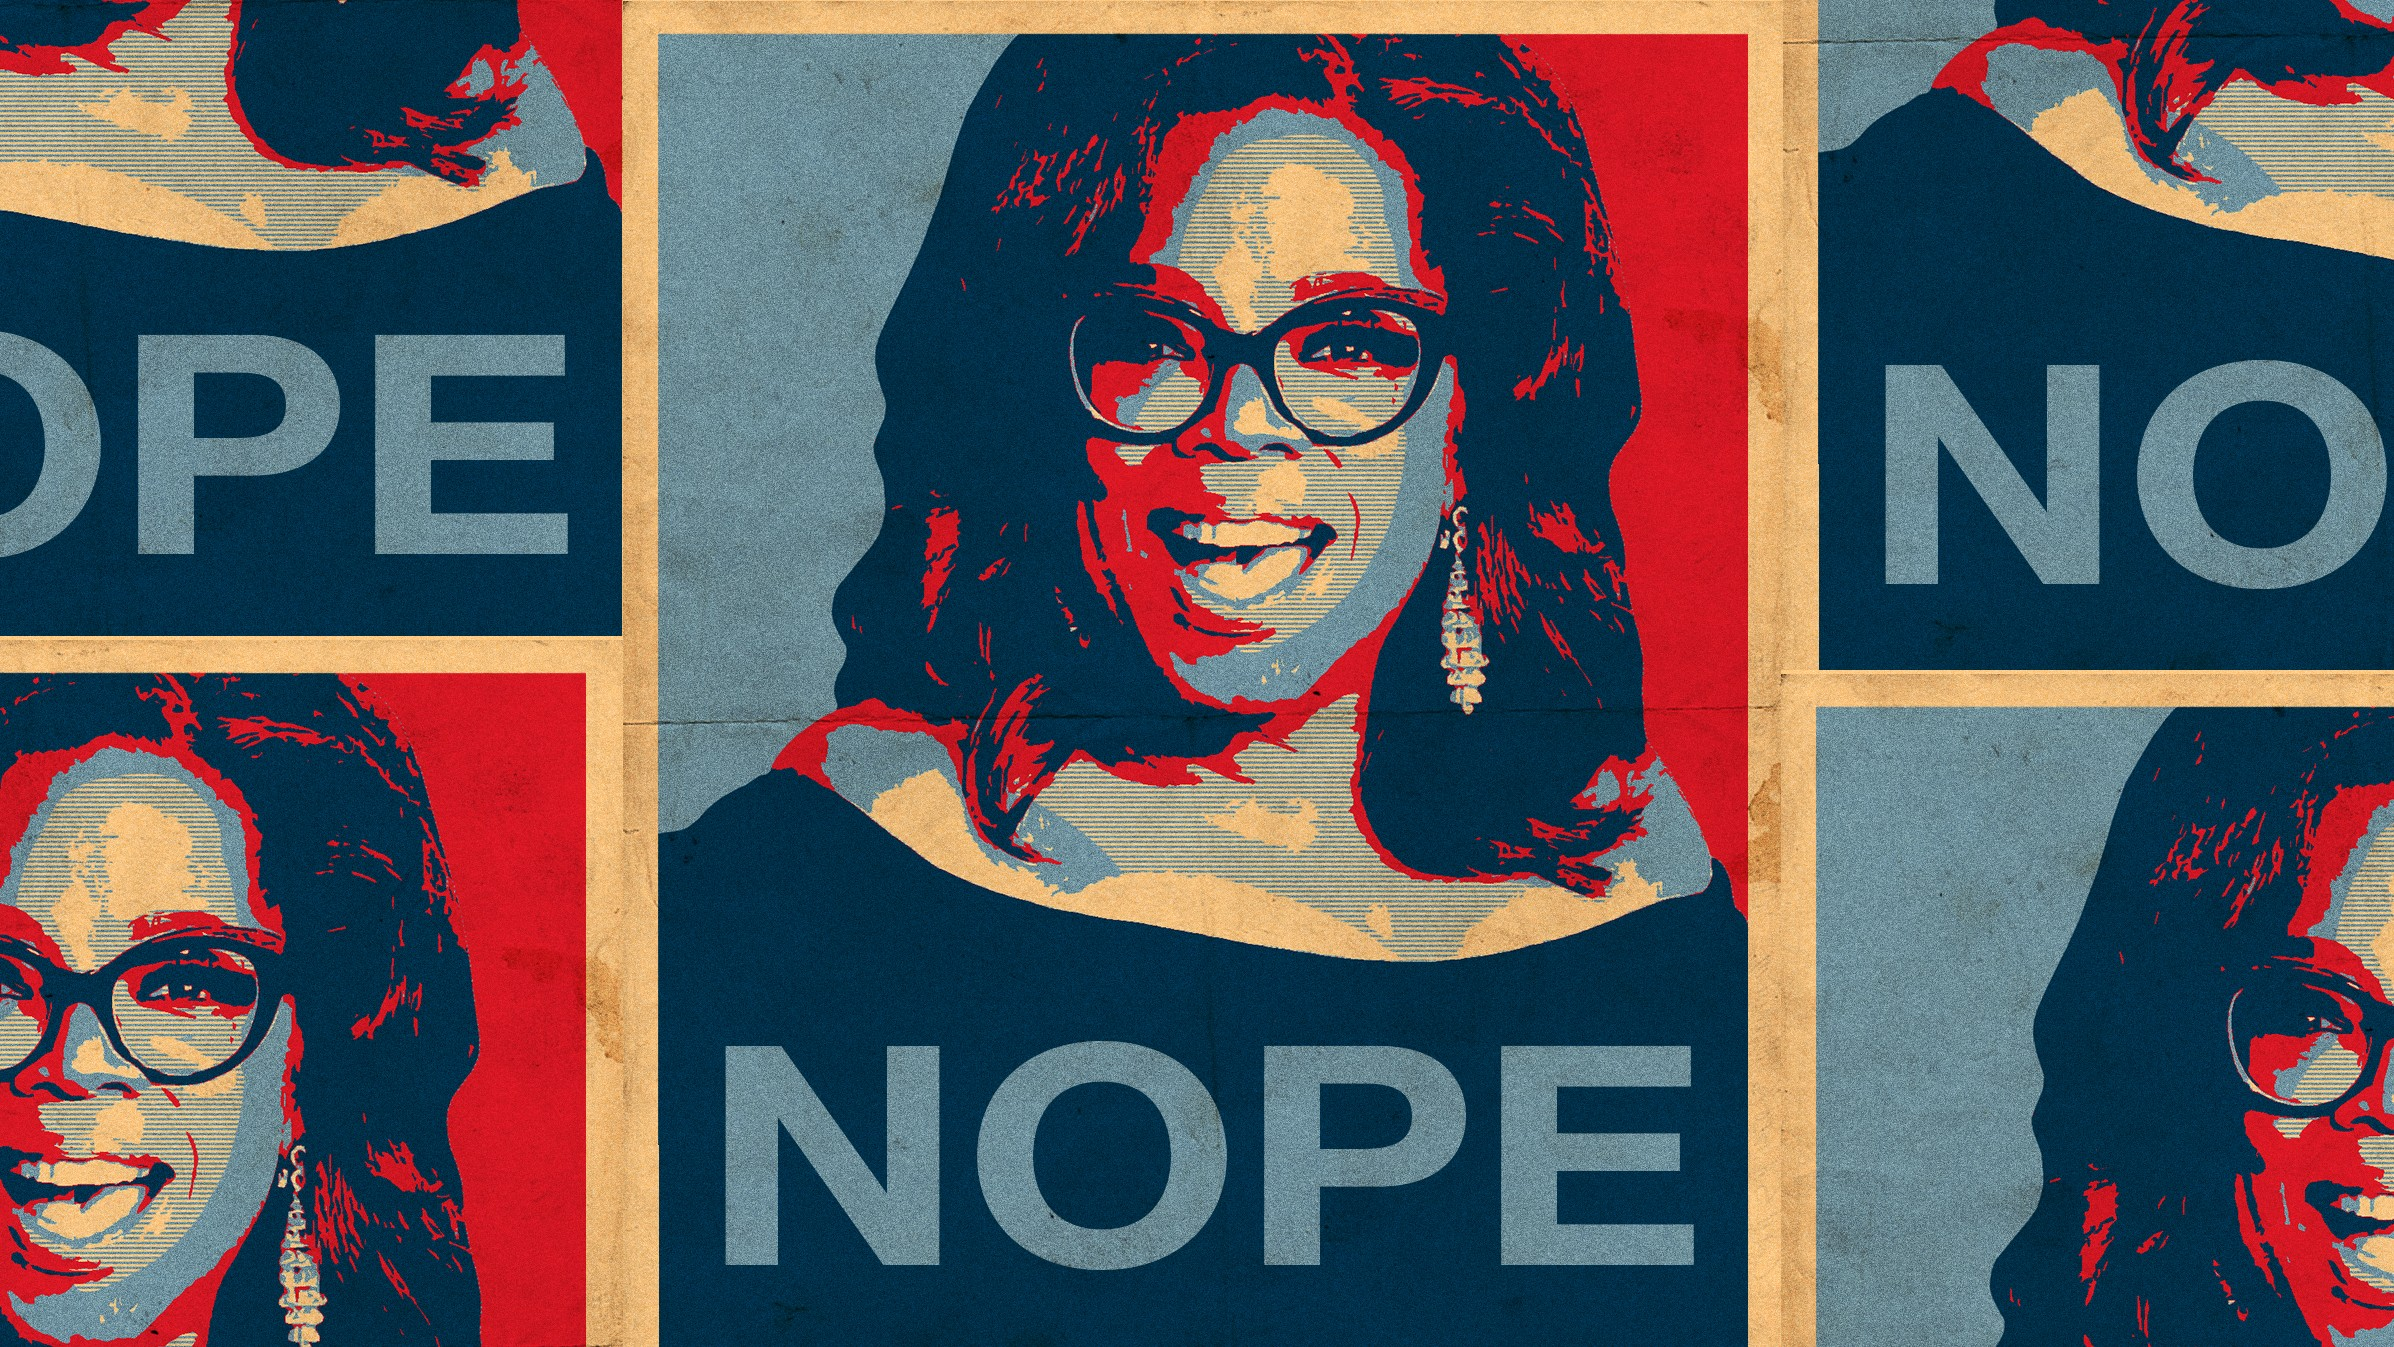 I Can't Believe I Have to Explain Why Oprah Shouldn't Be President